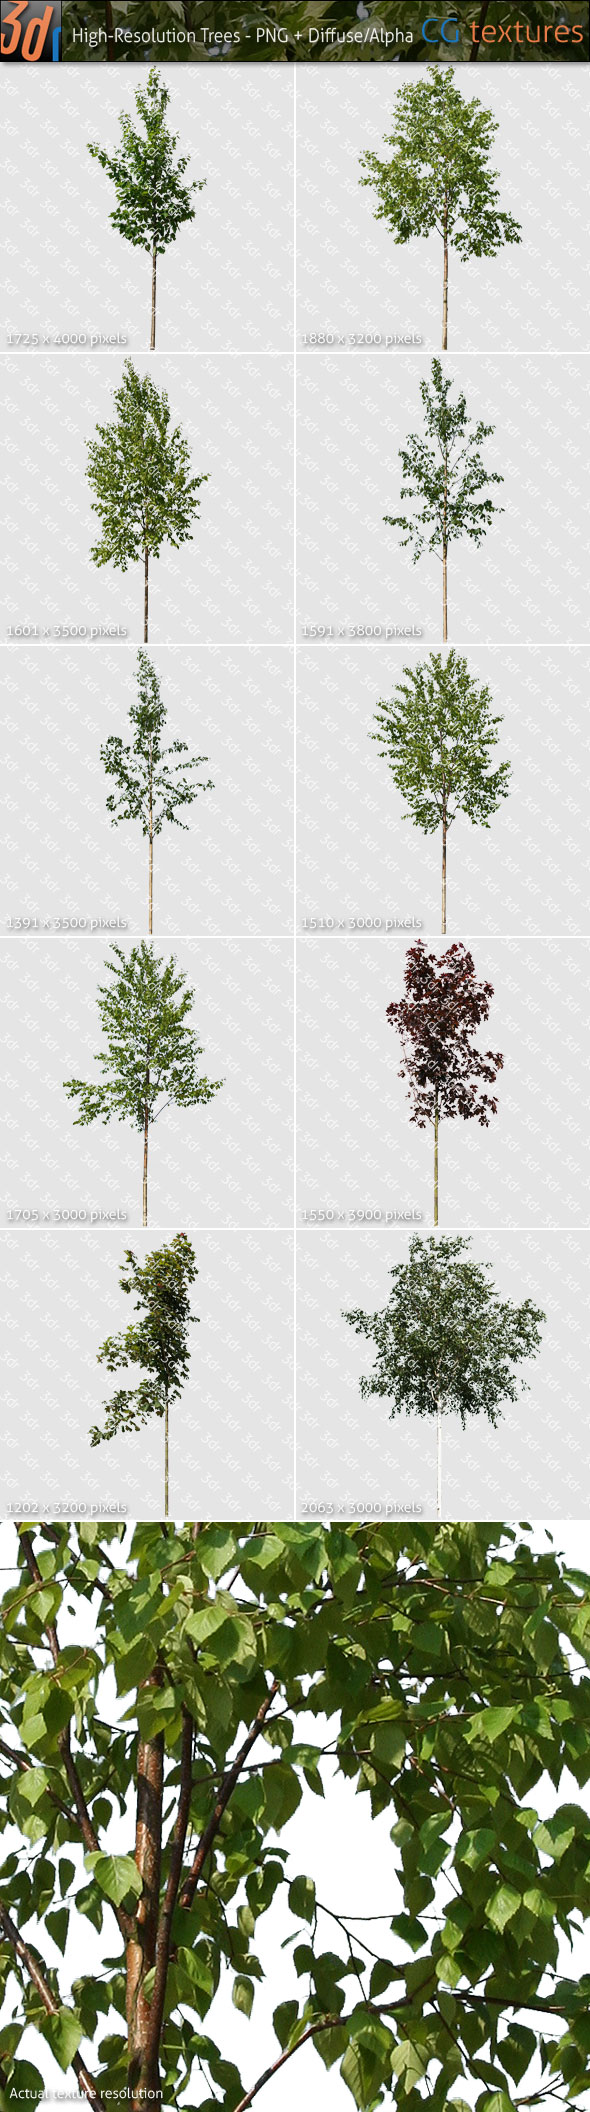 Trees Textures Hi-Res Collection 02 - 3DOcean Item for Sale